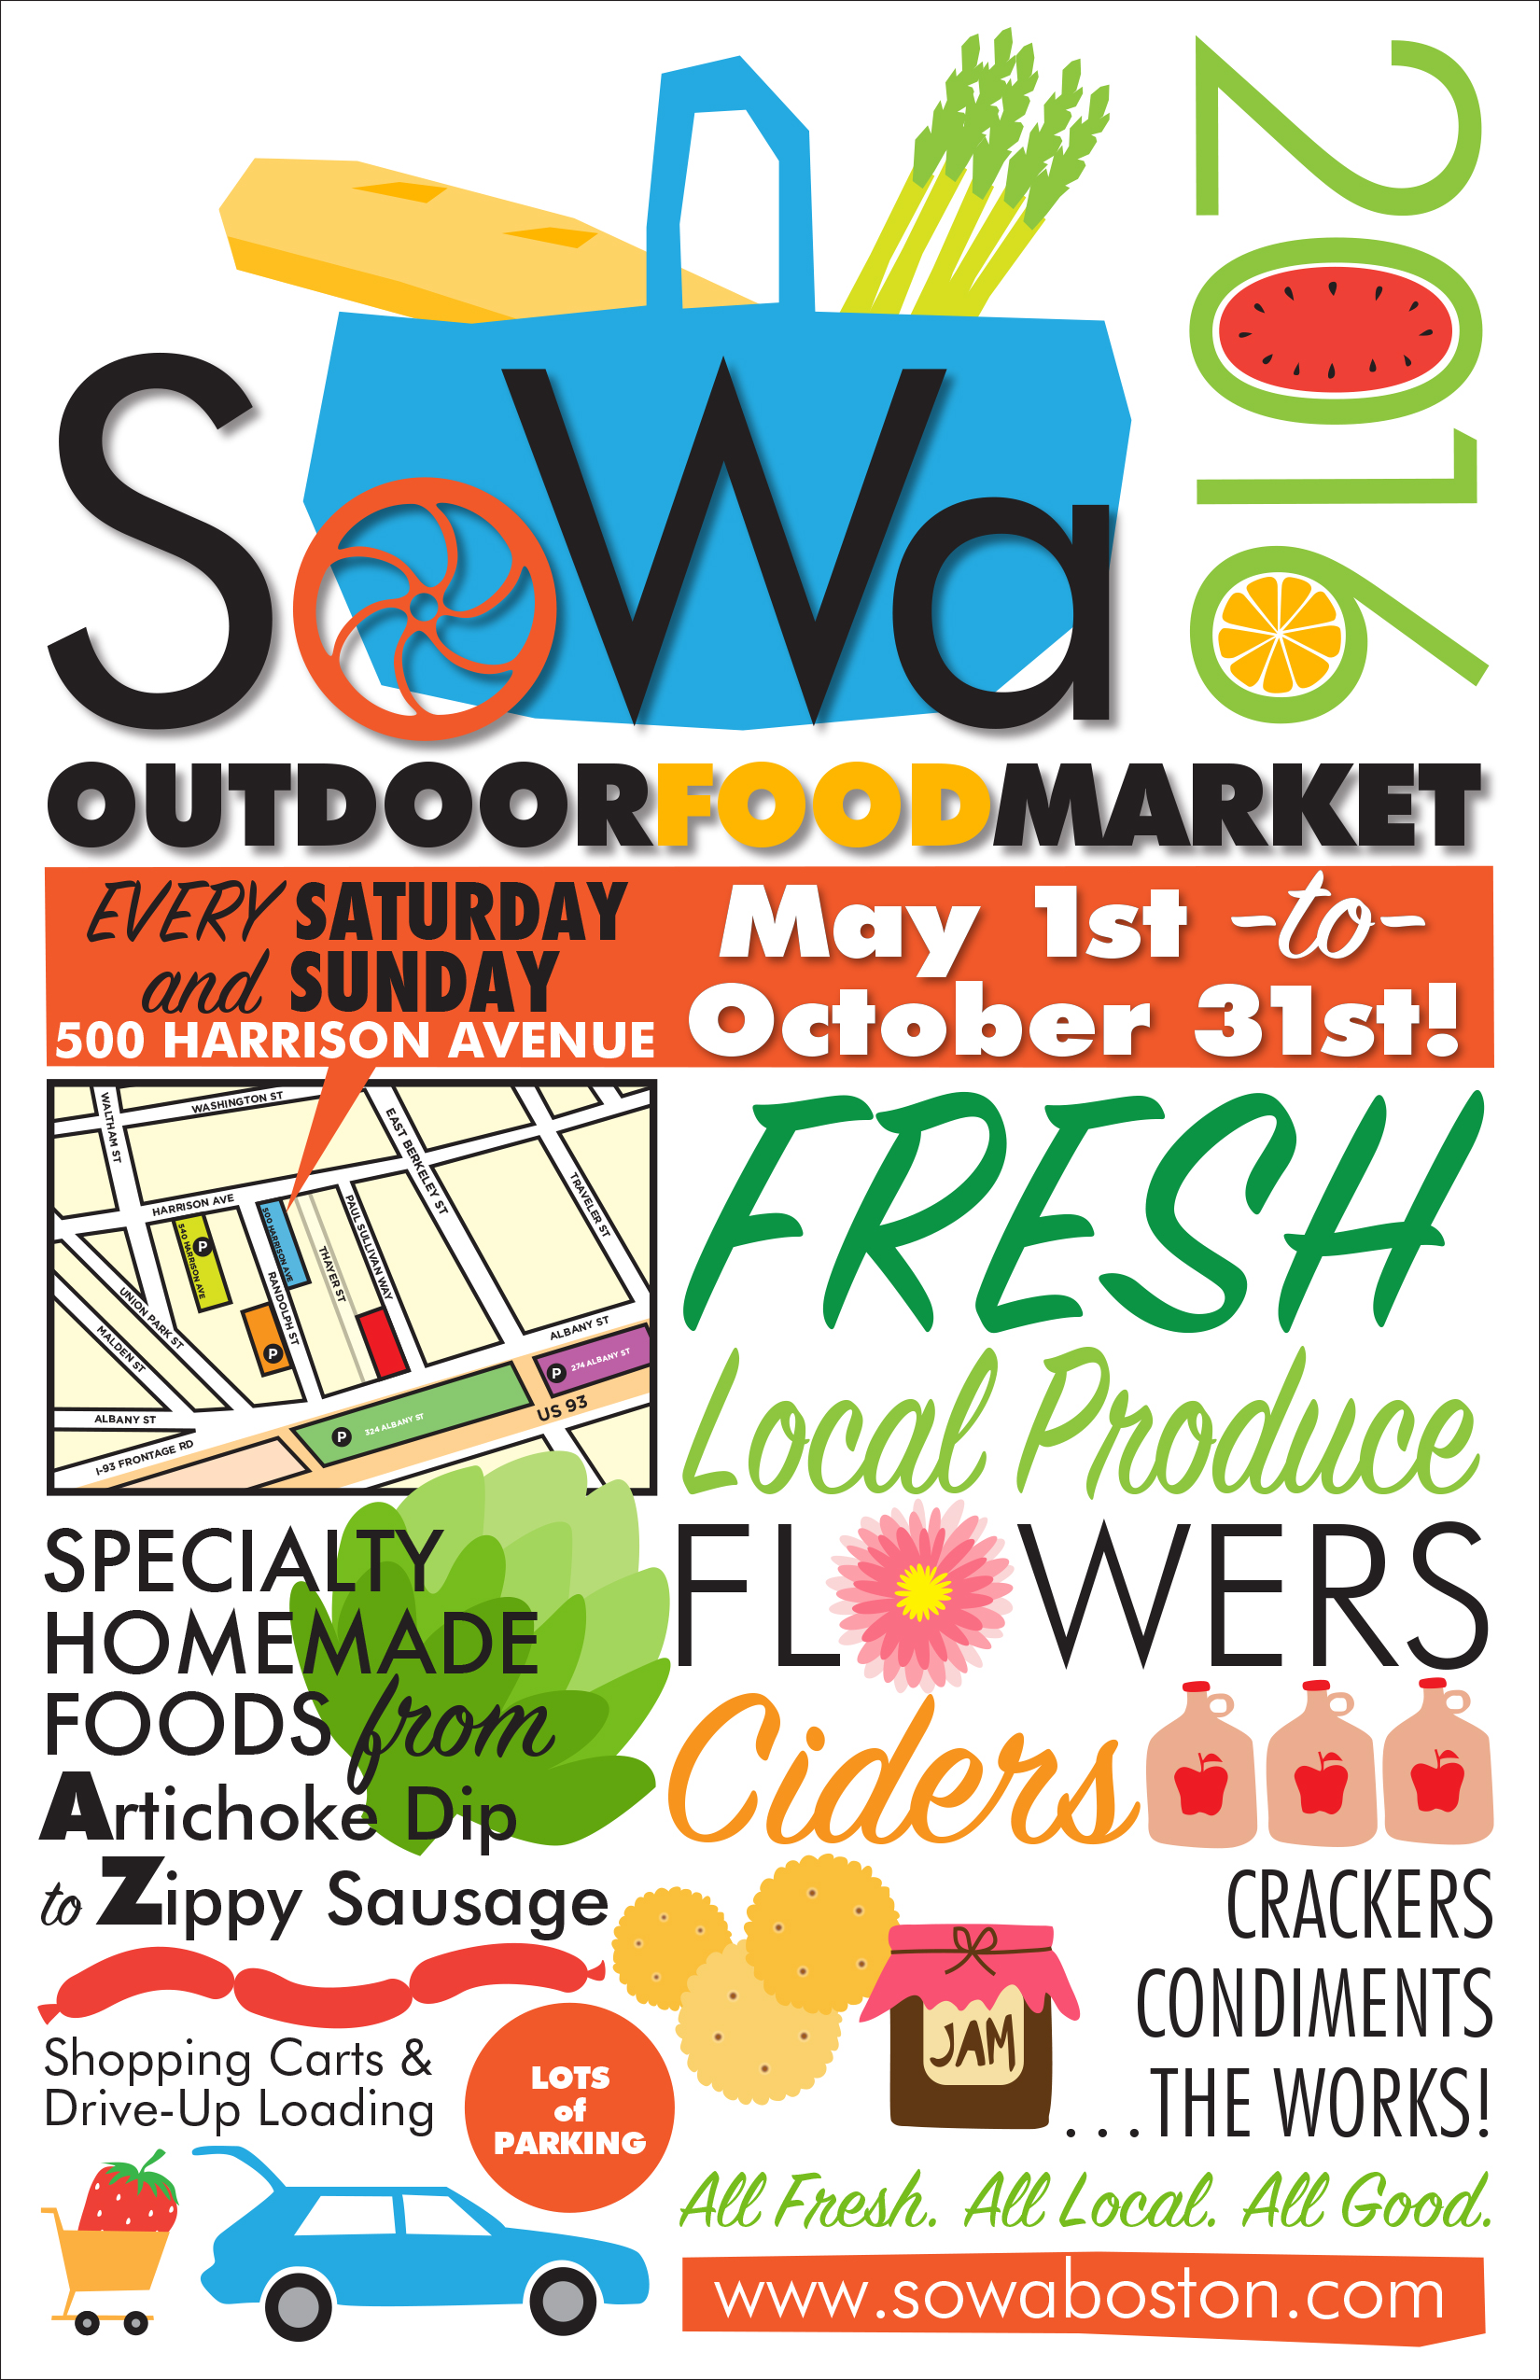 sowa outdoor food market